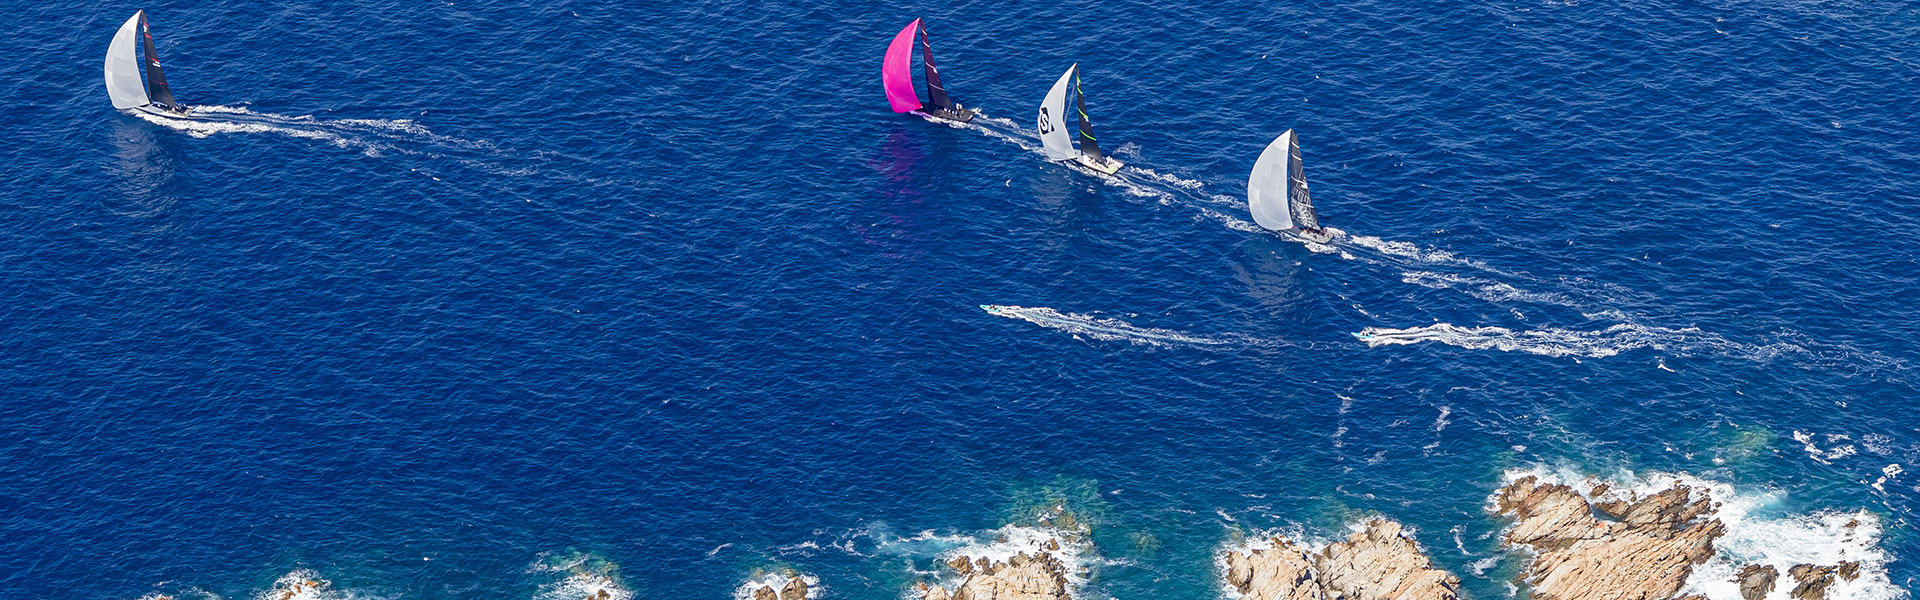 Maxi Yacht Rolex Cup - Cancelled - Porto Cervo 2020